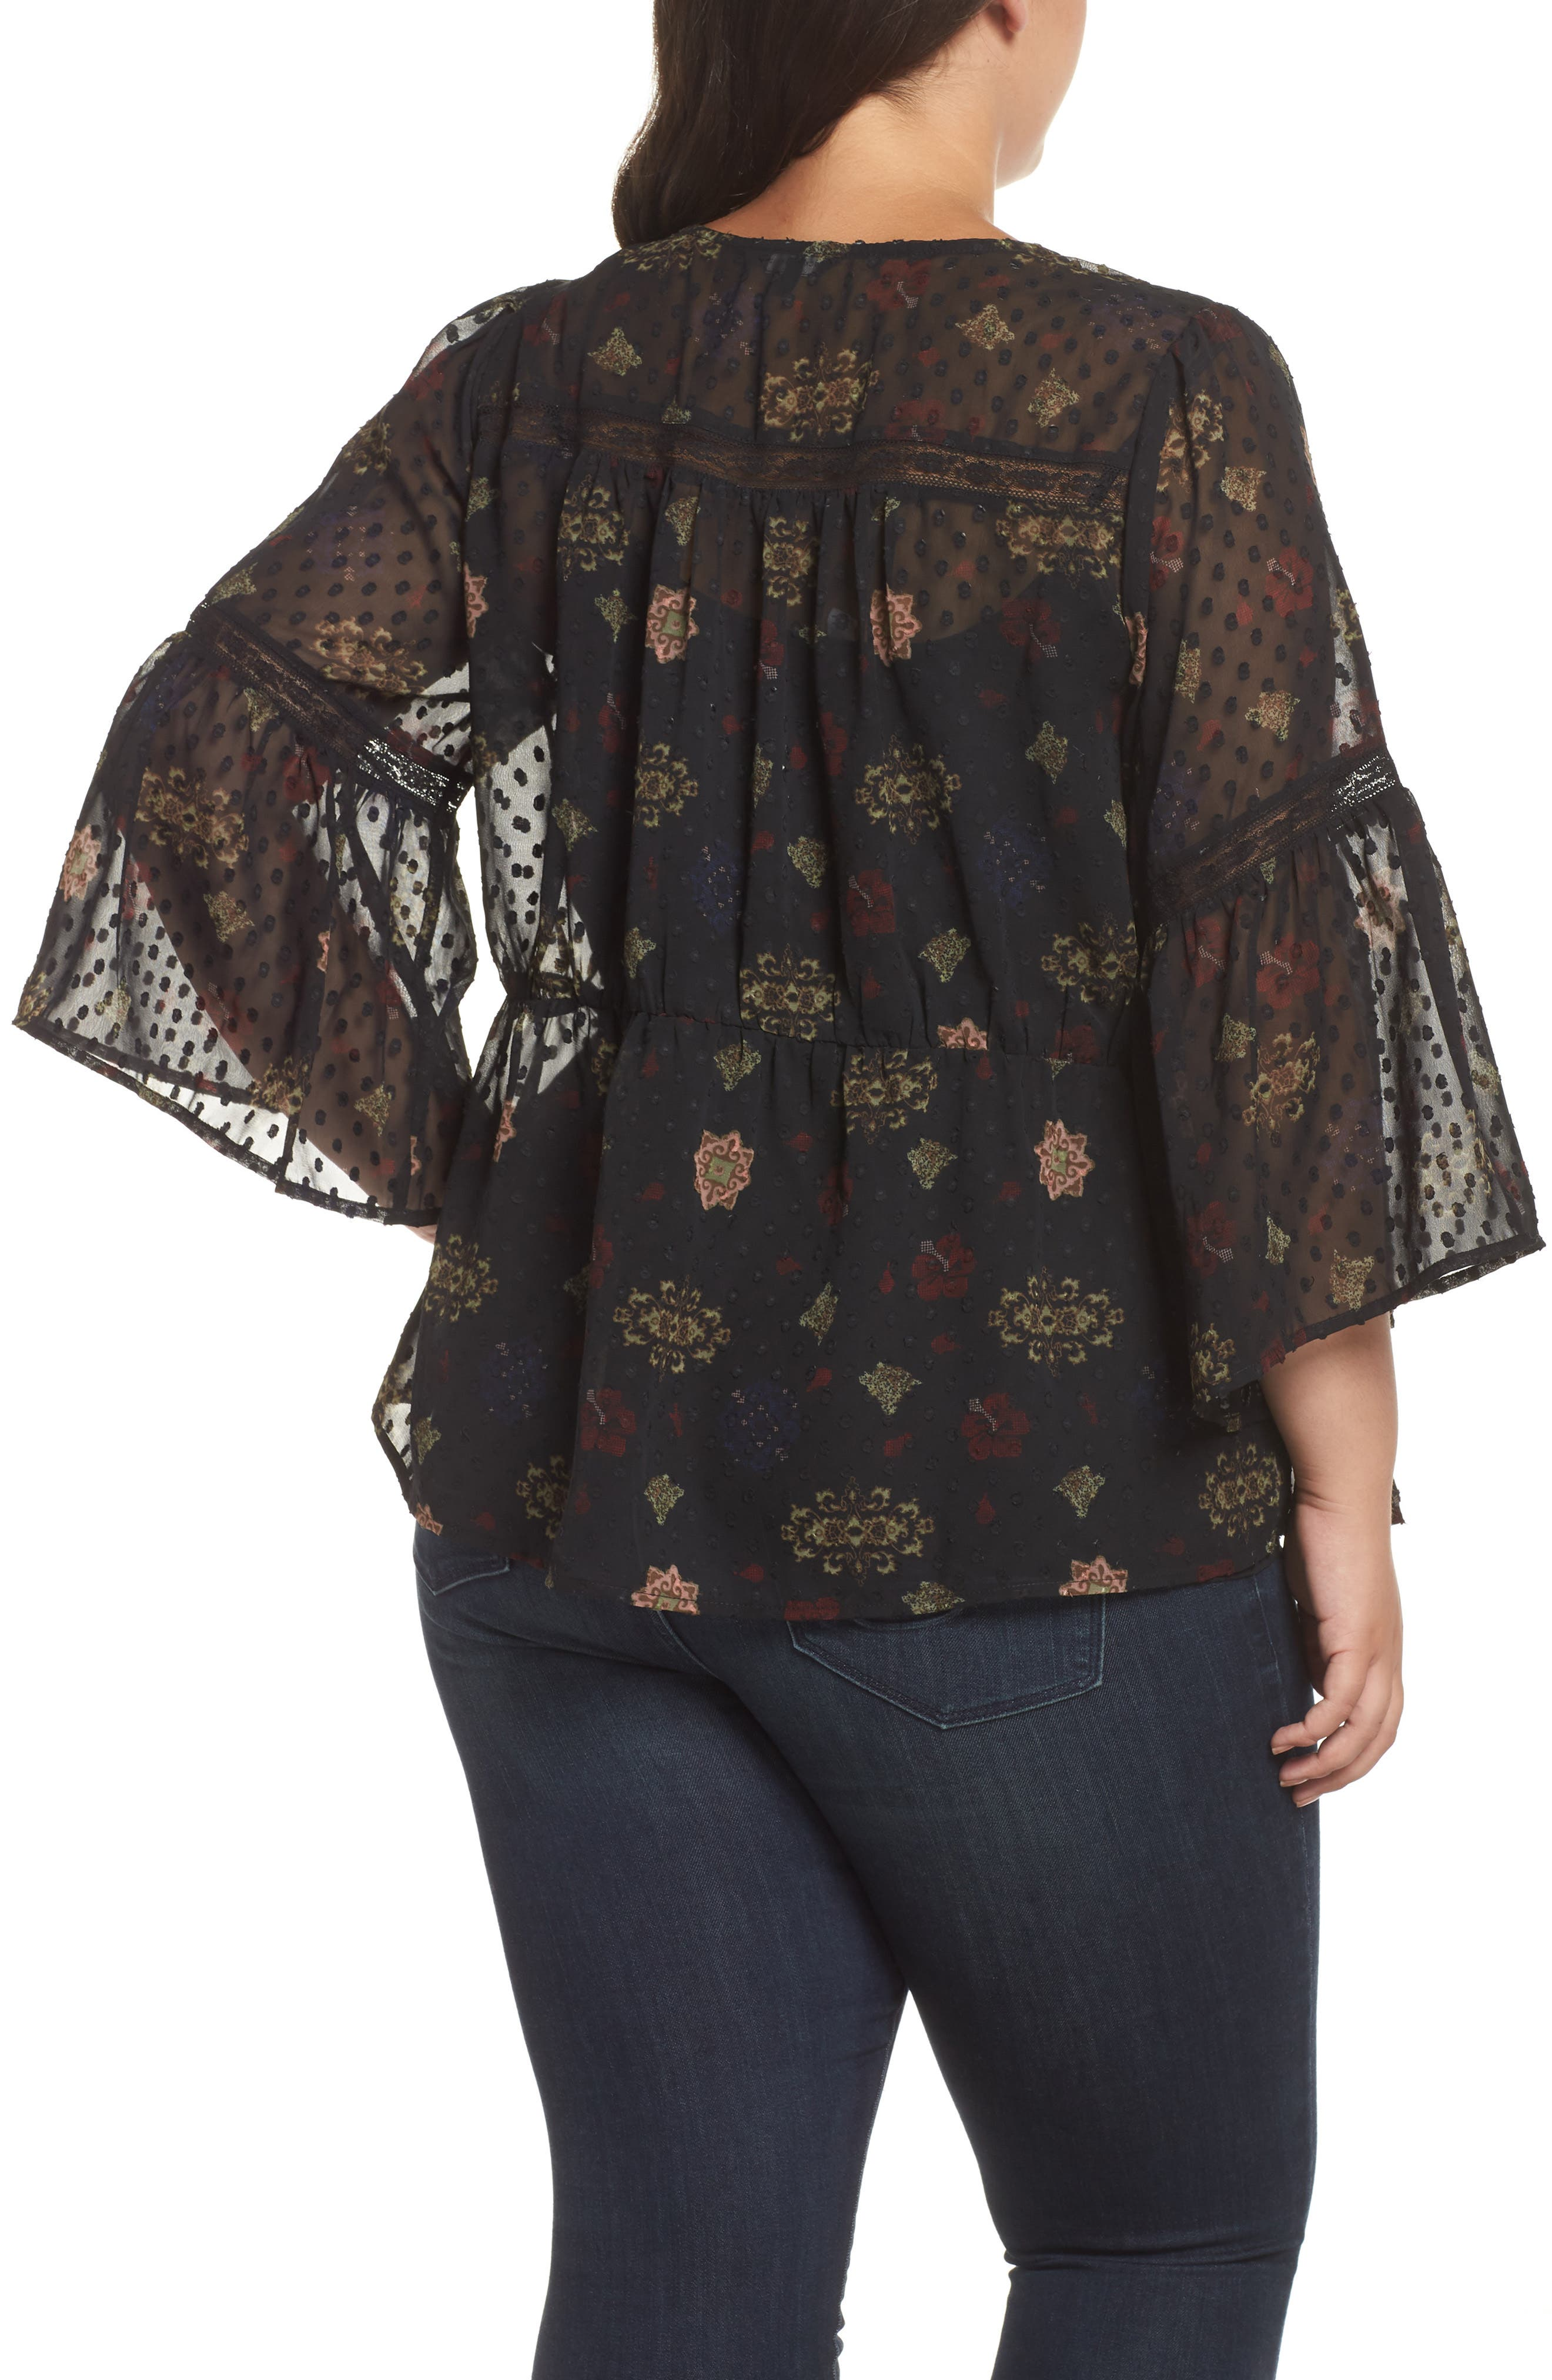 Swiss Dot Floral Top,                             Alternate thumbnail 2, color,                             BLACK MULTI